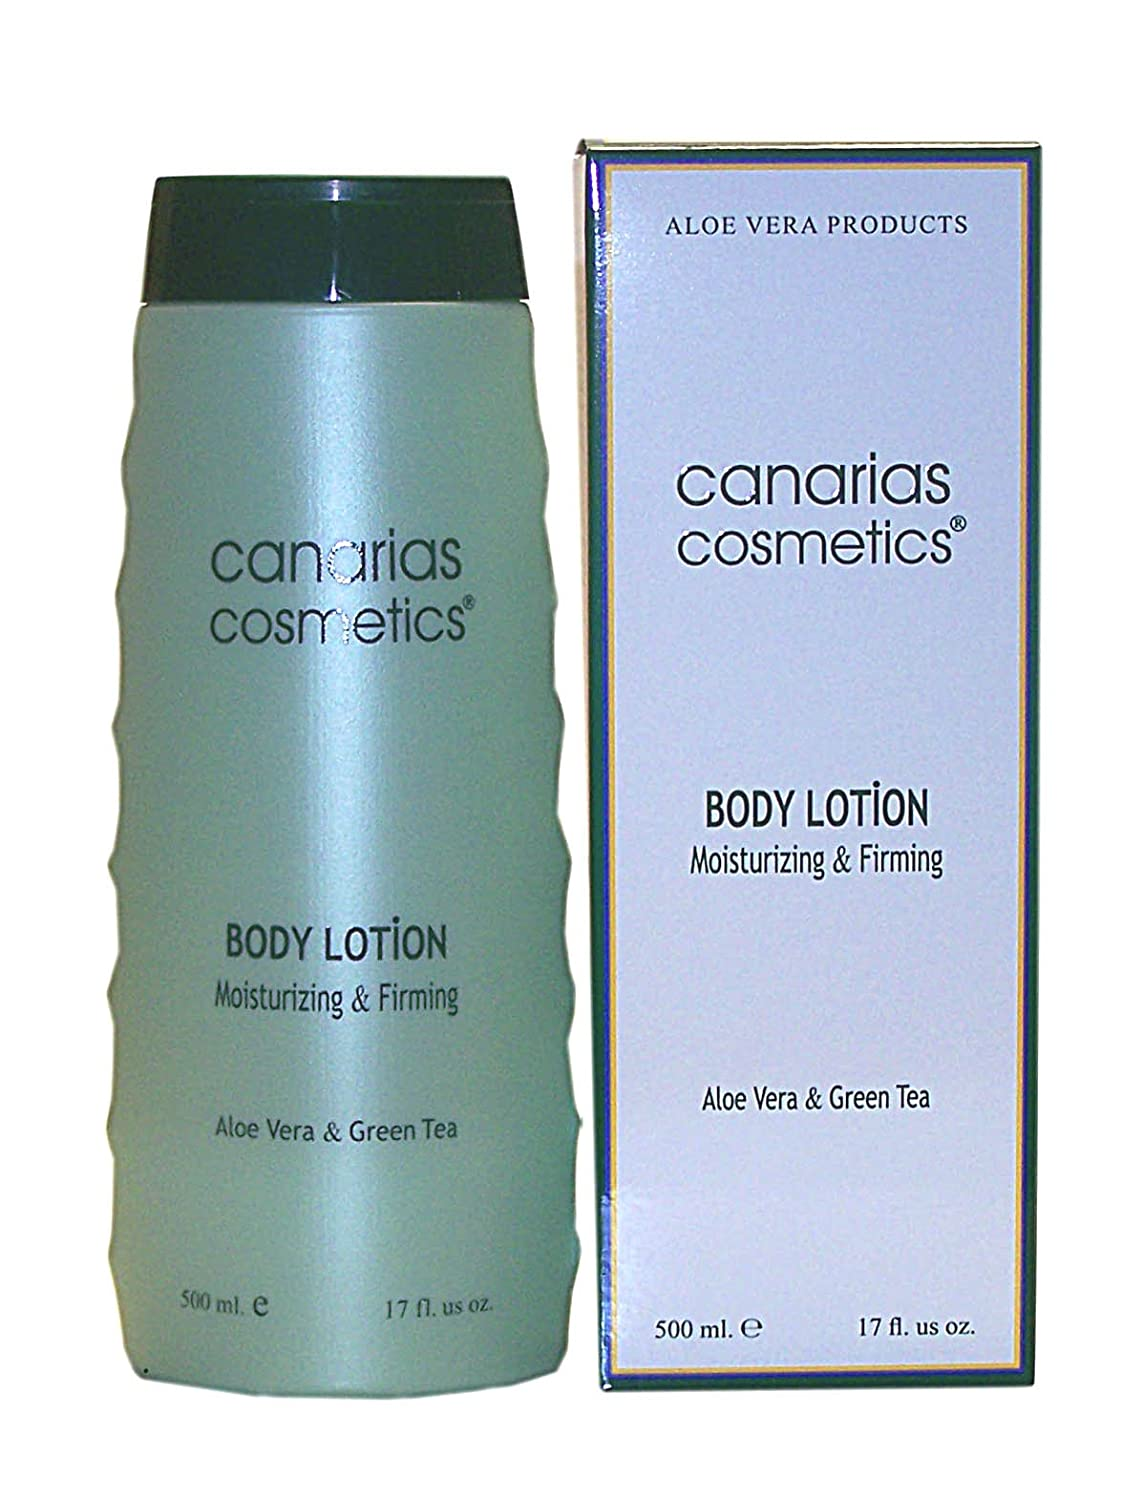 Canarias Cosmetics Dermo Aloe Body Lotion, 1er Pack (1 x 500 g) 210042